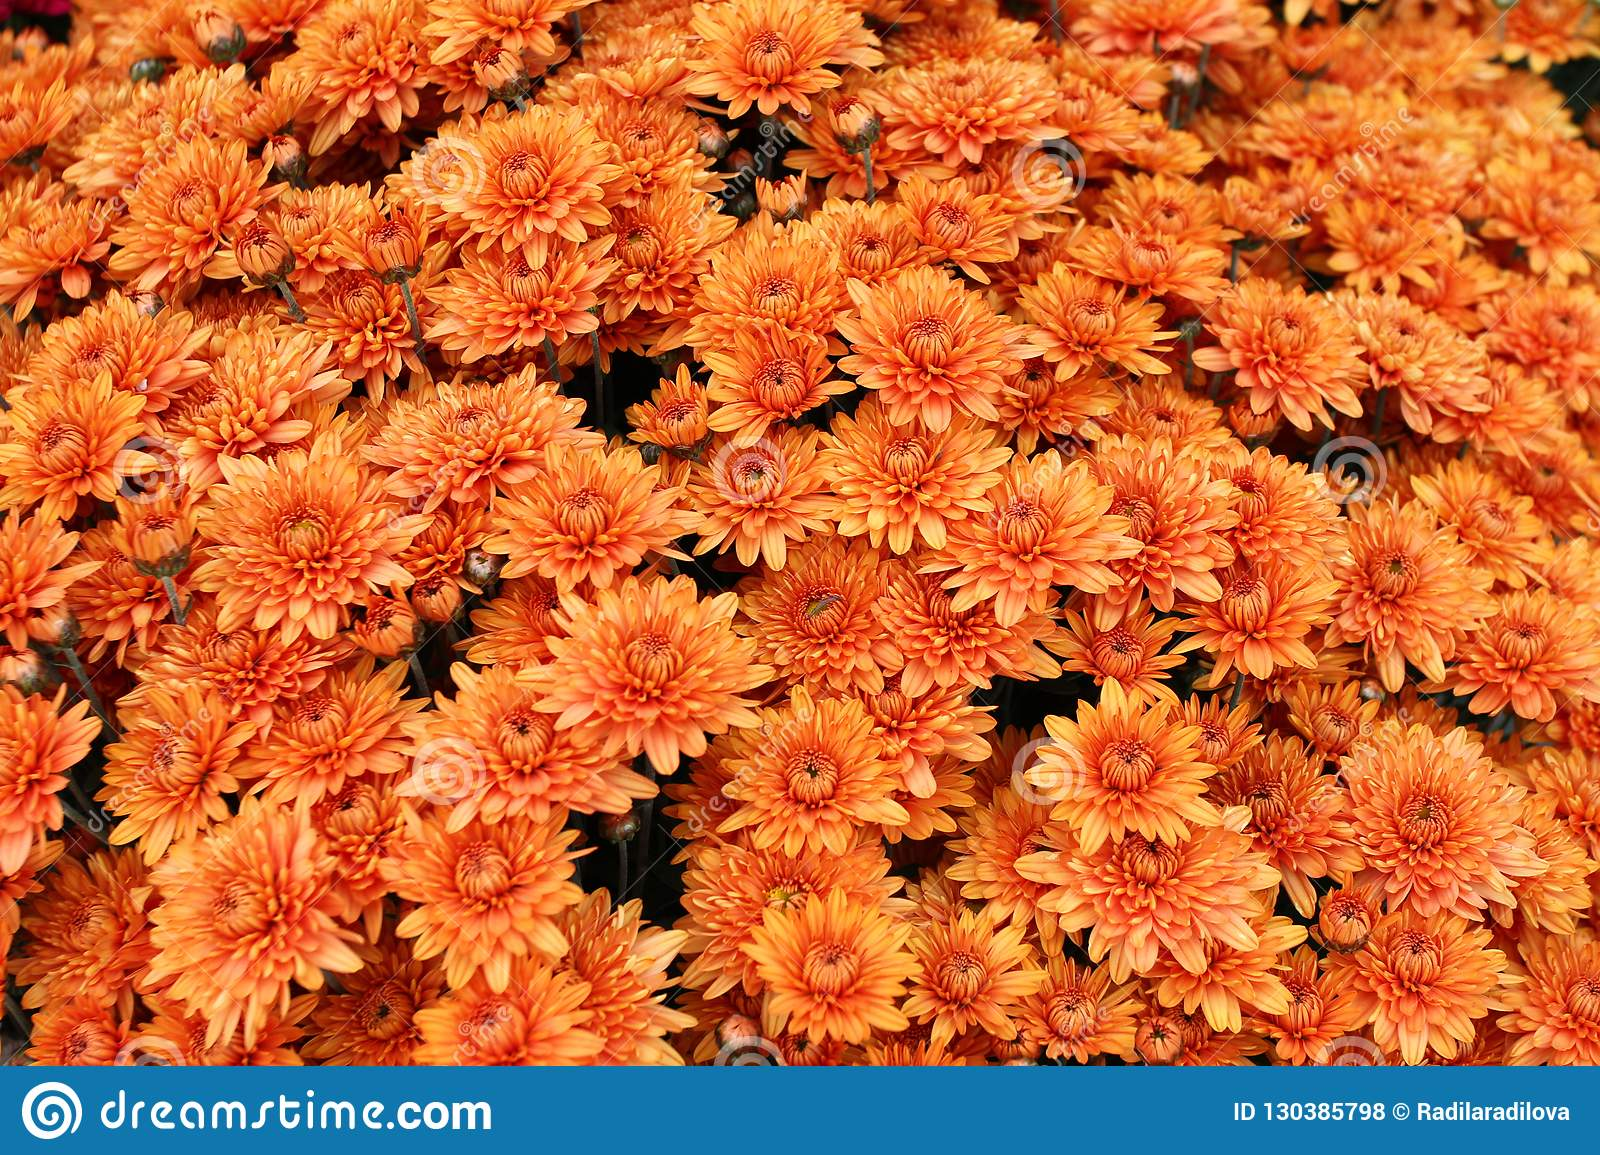 A bouquet of beautiful chrysanthemum flowers outdoors. Chrysanthemums in the garden. Colorful flower chrisanthemum. Floral pattern